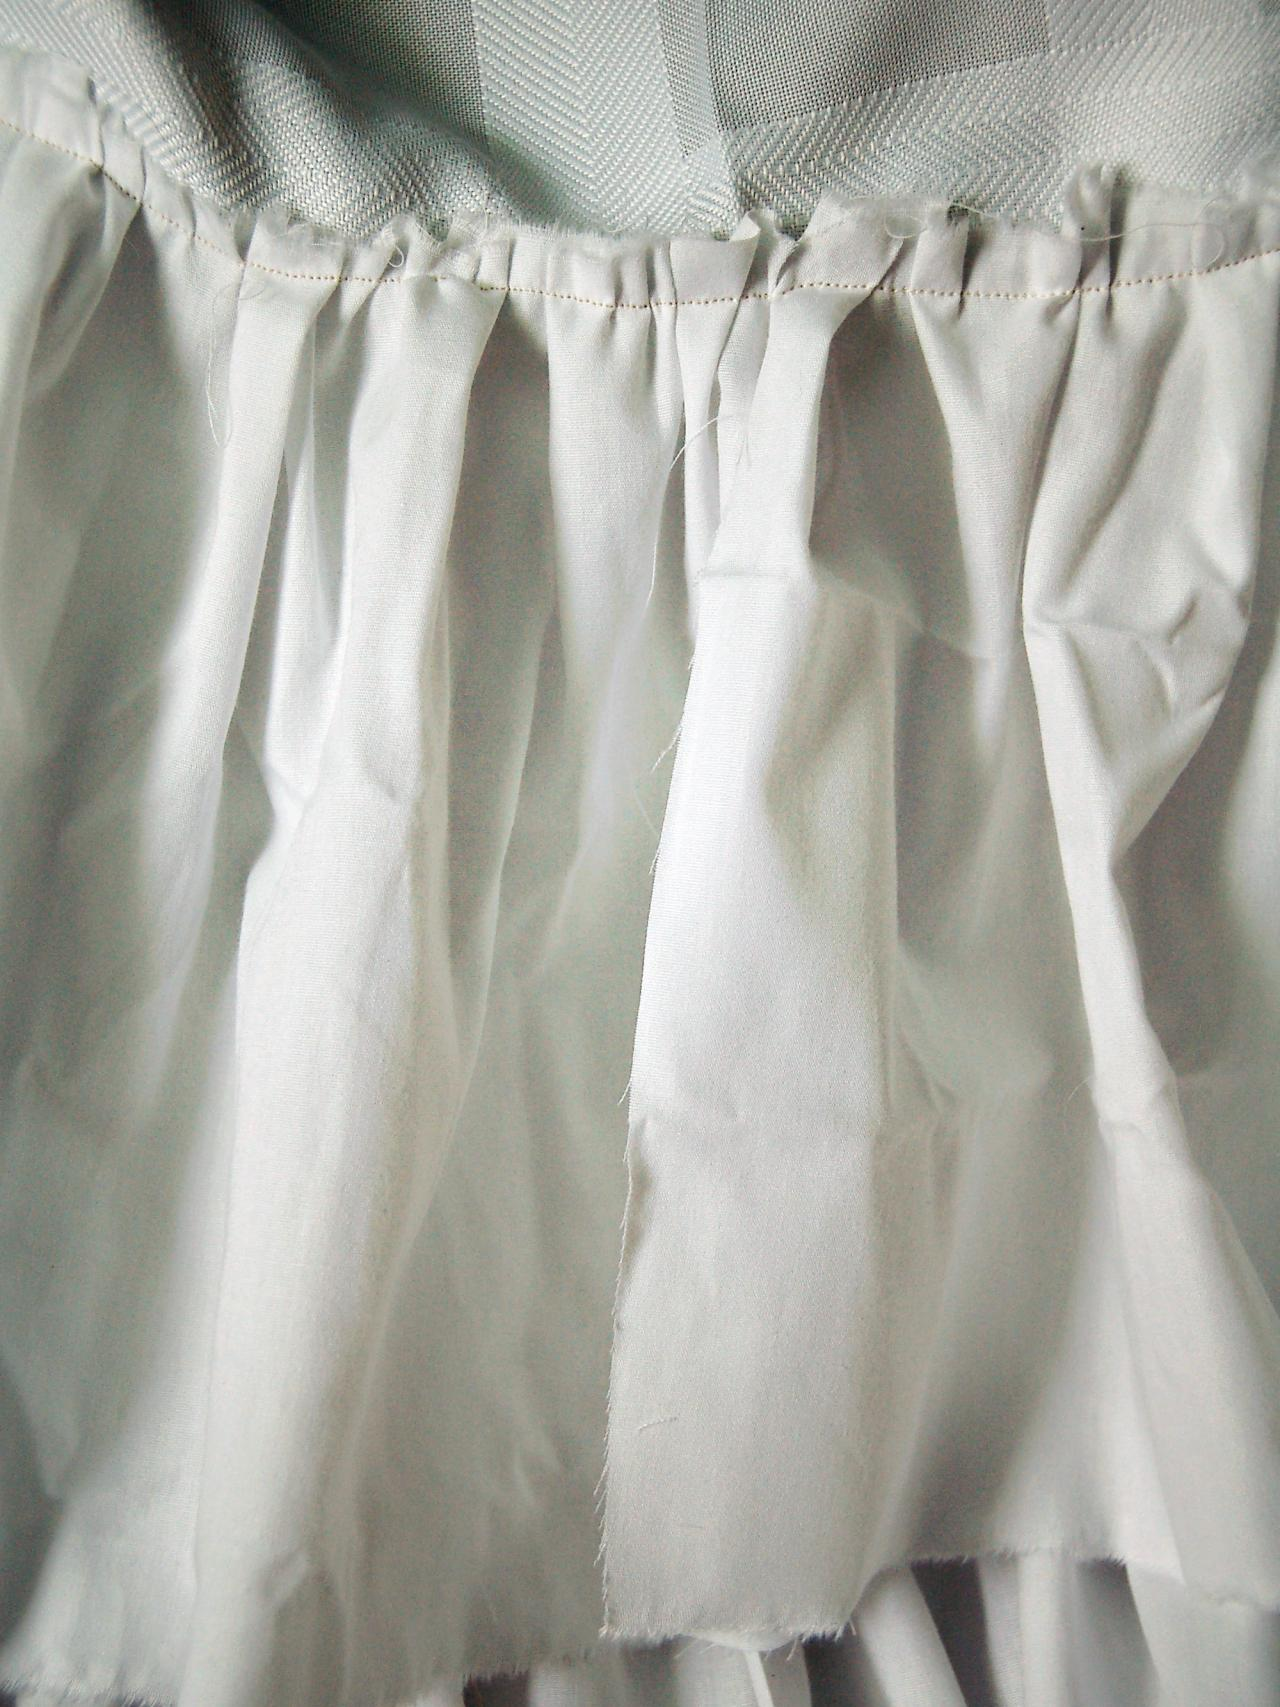 Shower Curtain Ruffle Seam